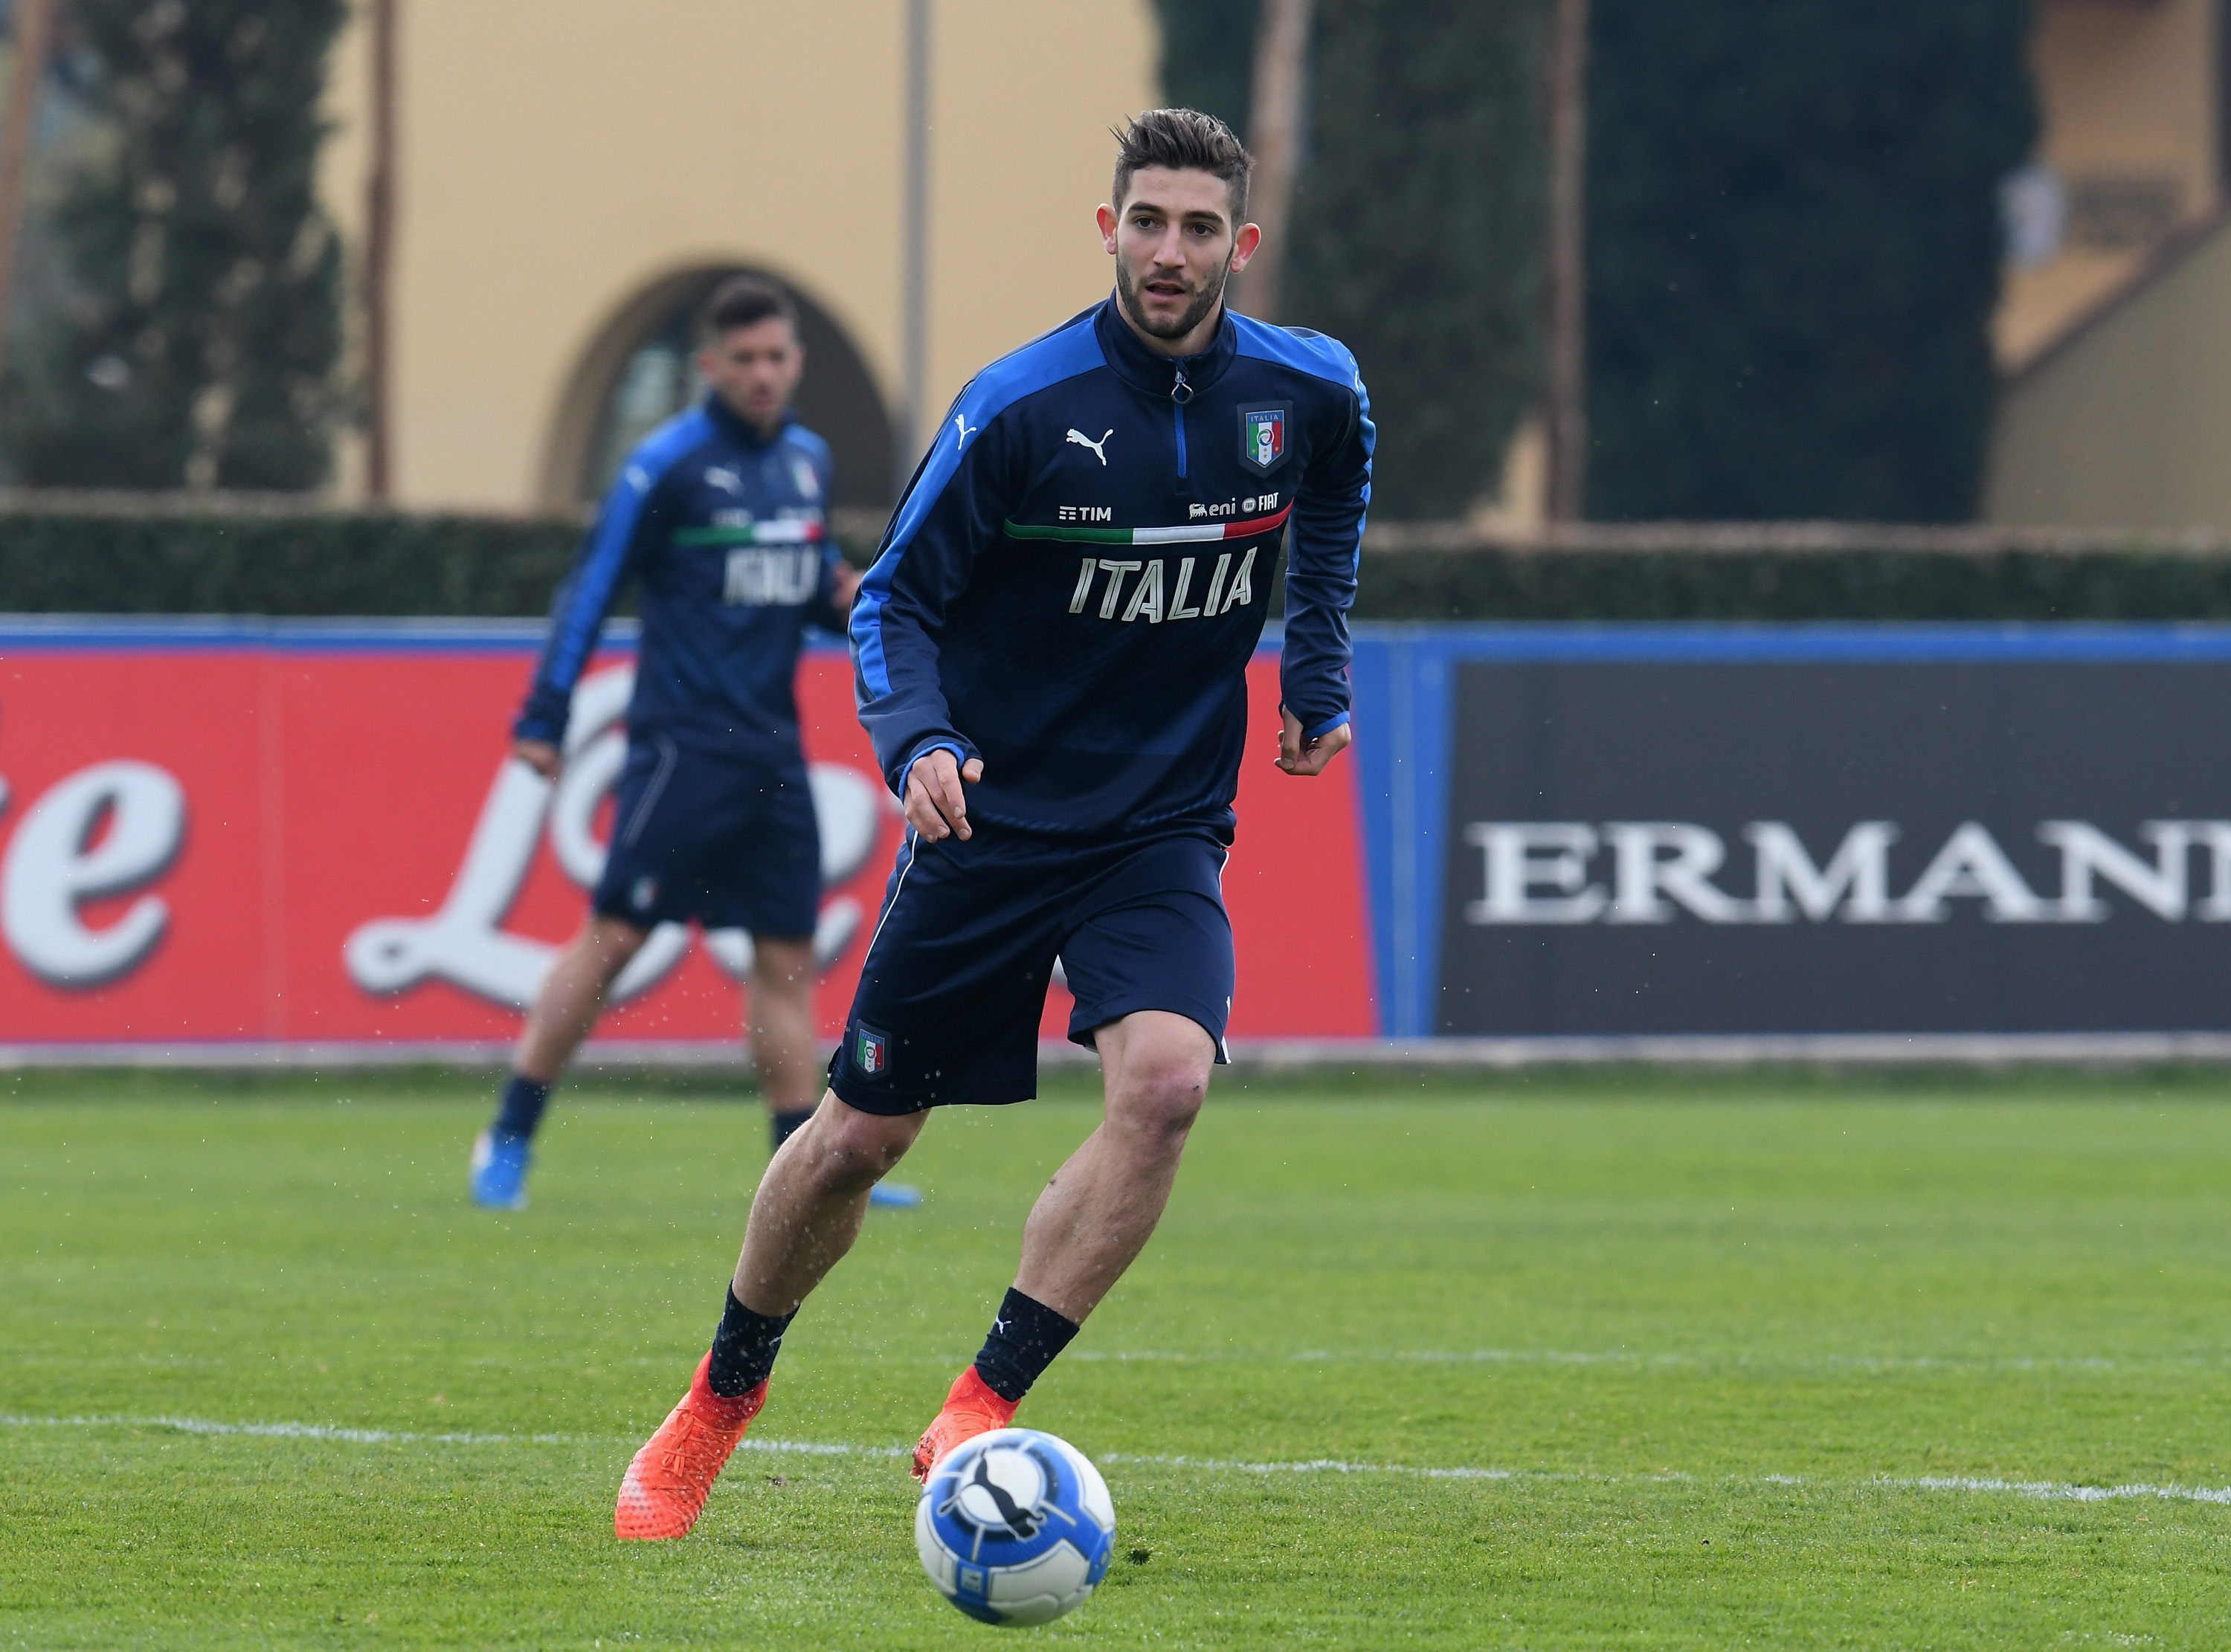 FLORENCE, ITALY - FEBRUARY 21: Roberto Gagliardini of Italy in action during the training session at the club's training ground at Coverciano on February 21, 2017 in Florence, Italy. (Photo by Claudio Villa/Getty Images)